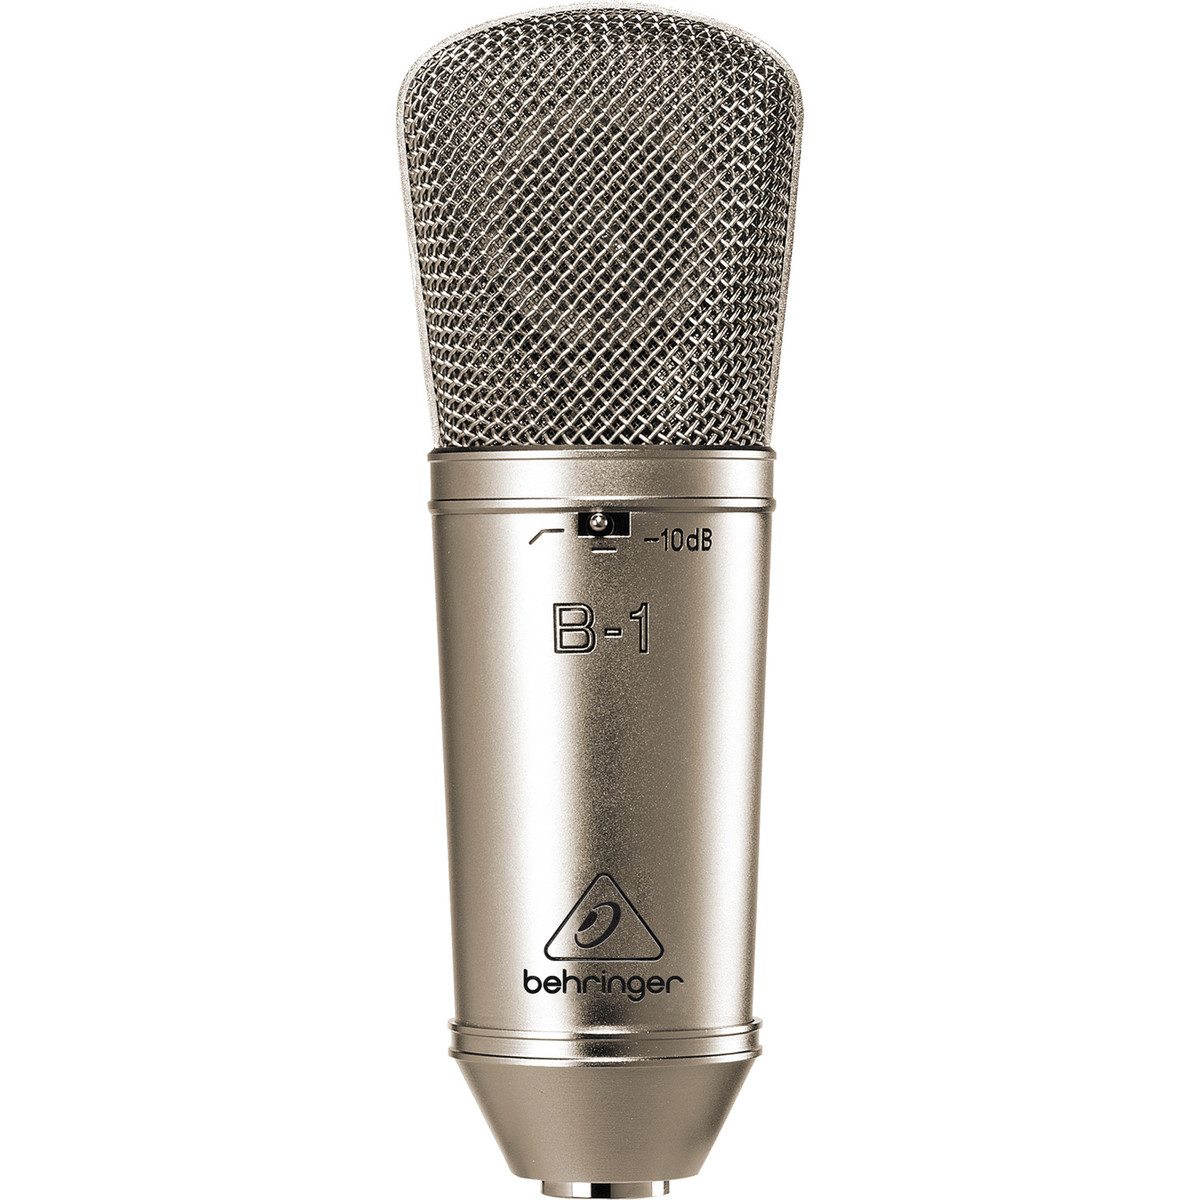 Image of Behringer B-1 Condenser Microphone